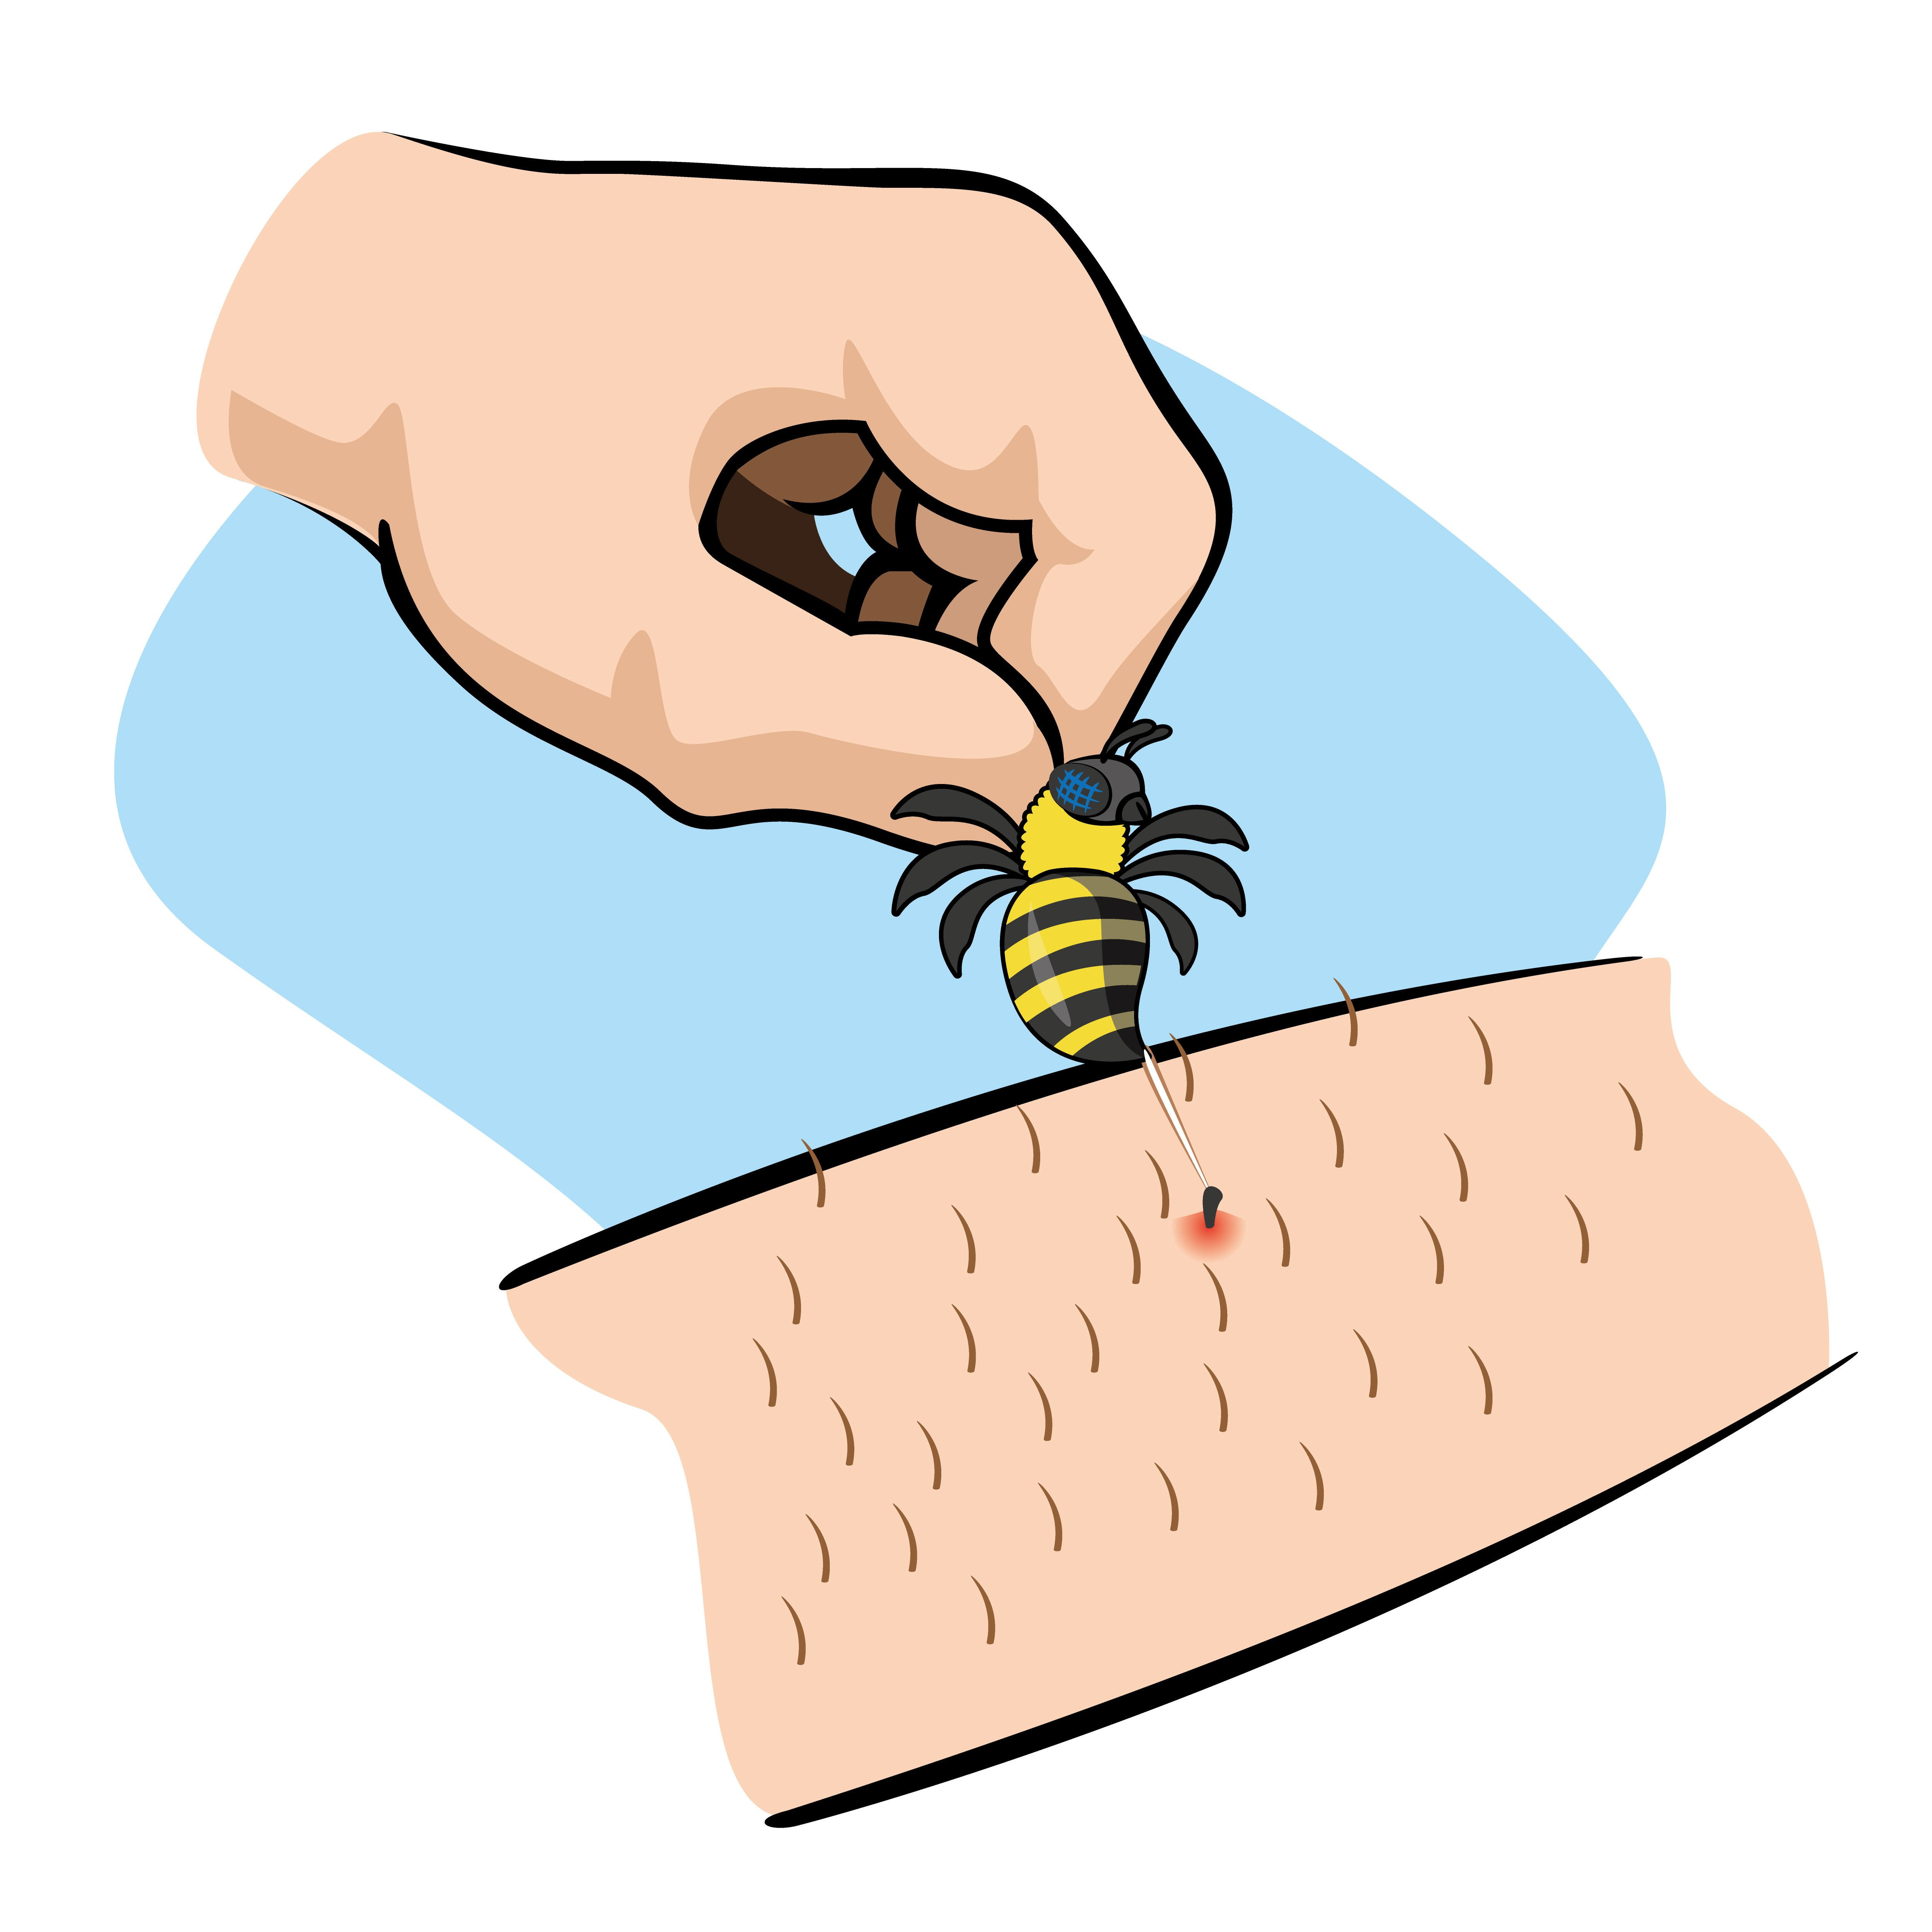 Bee sting allergic reaction clipart clip art black and white stock How to Treat a Bee Sting Fast (and Safely)? A Complete Guide clip art black and white stock